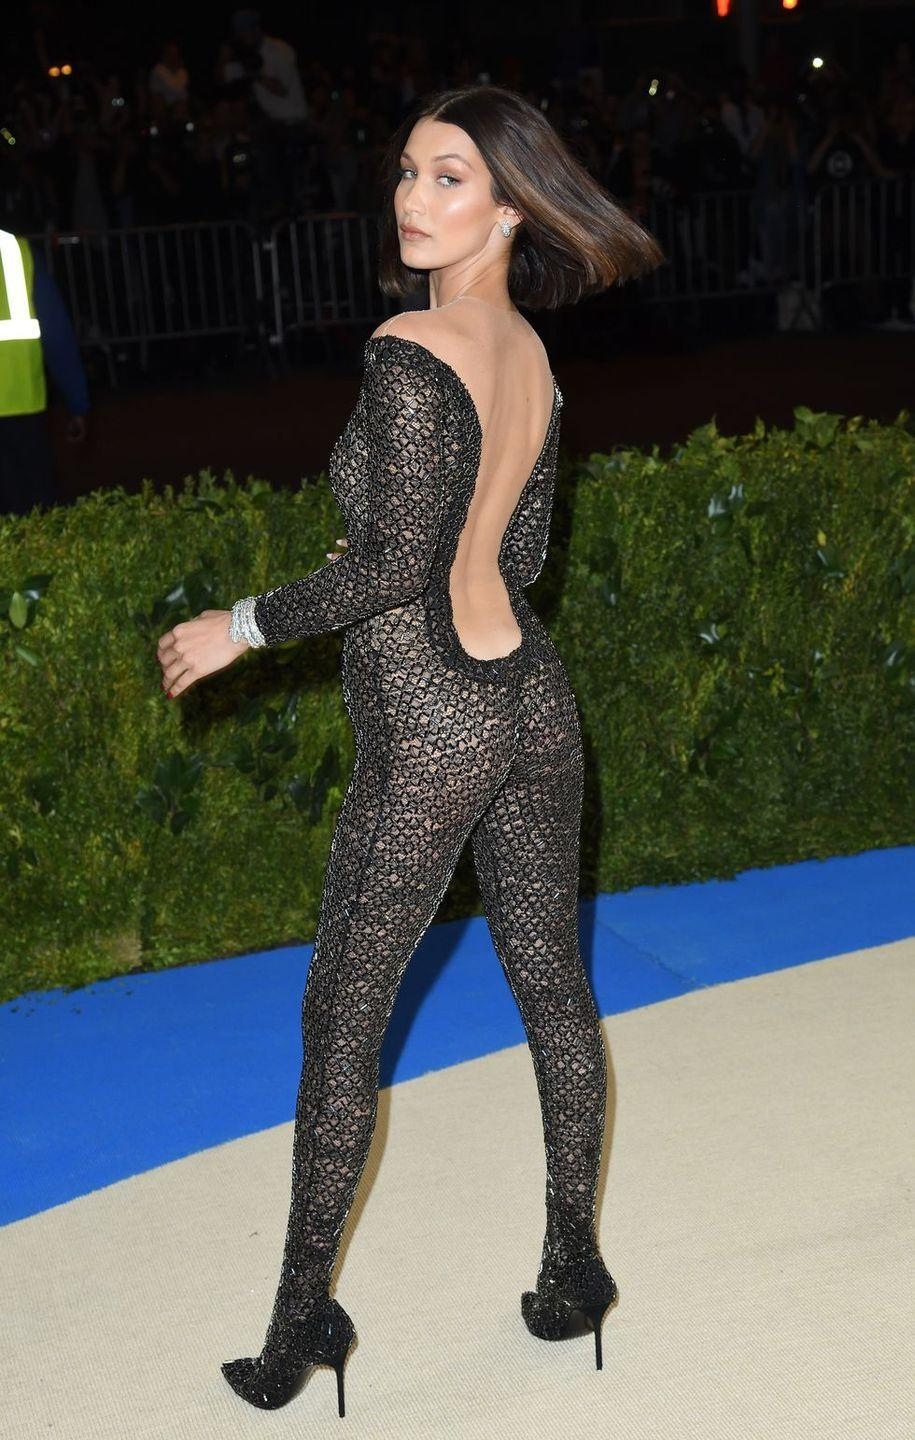 """<p>Ok, this technically isn't a naked dress but who could forget the sheer Alexander Wang catsuit Bella Hadid wore to the <a href=""""https://www.cosmopolitan.com/uk/fashion/celebrity/g9589299/met-gala-red-carpet-dresses-2017/"""" rel=""""nofollow noopener"""" target=""""_blank"""" data-ylk=""""slk:2017 Met Gala"""" class=""""link rapid-noclick-resp"""">2017 Met Gala</a>? Answer: no one.</p>"""